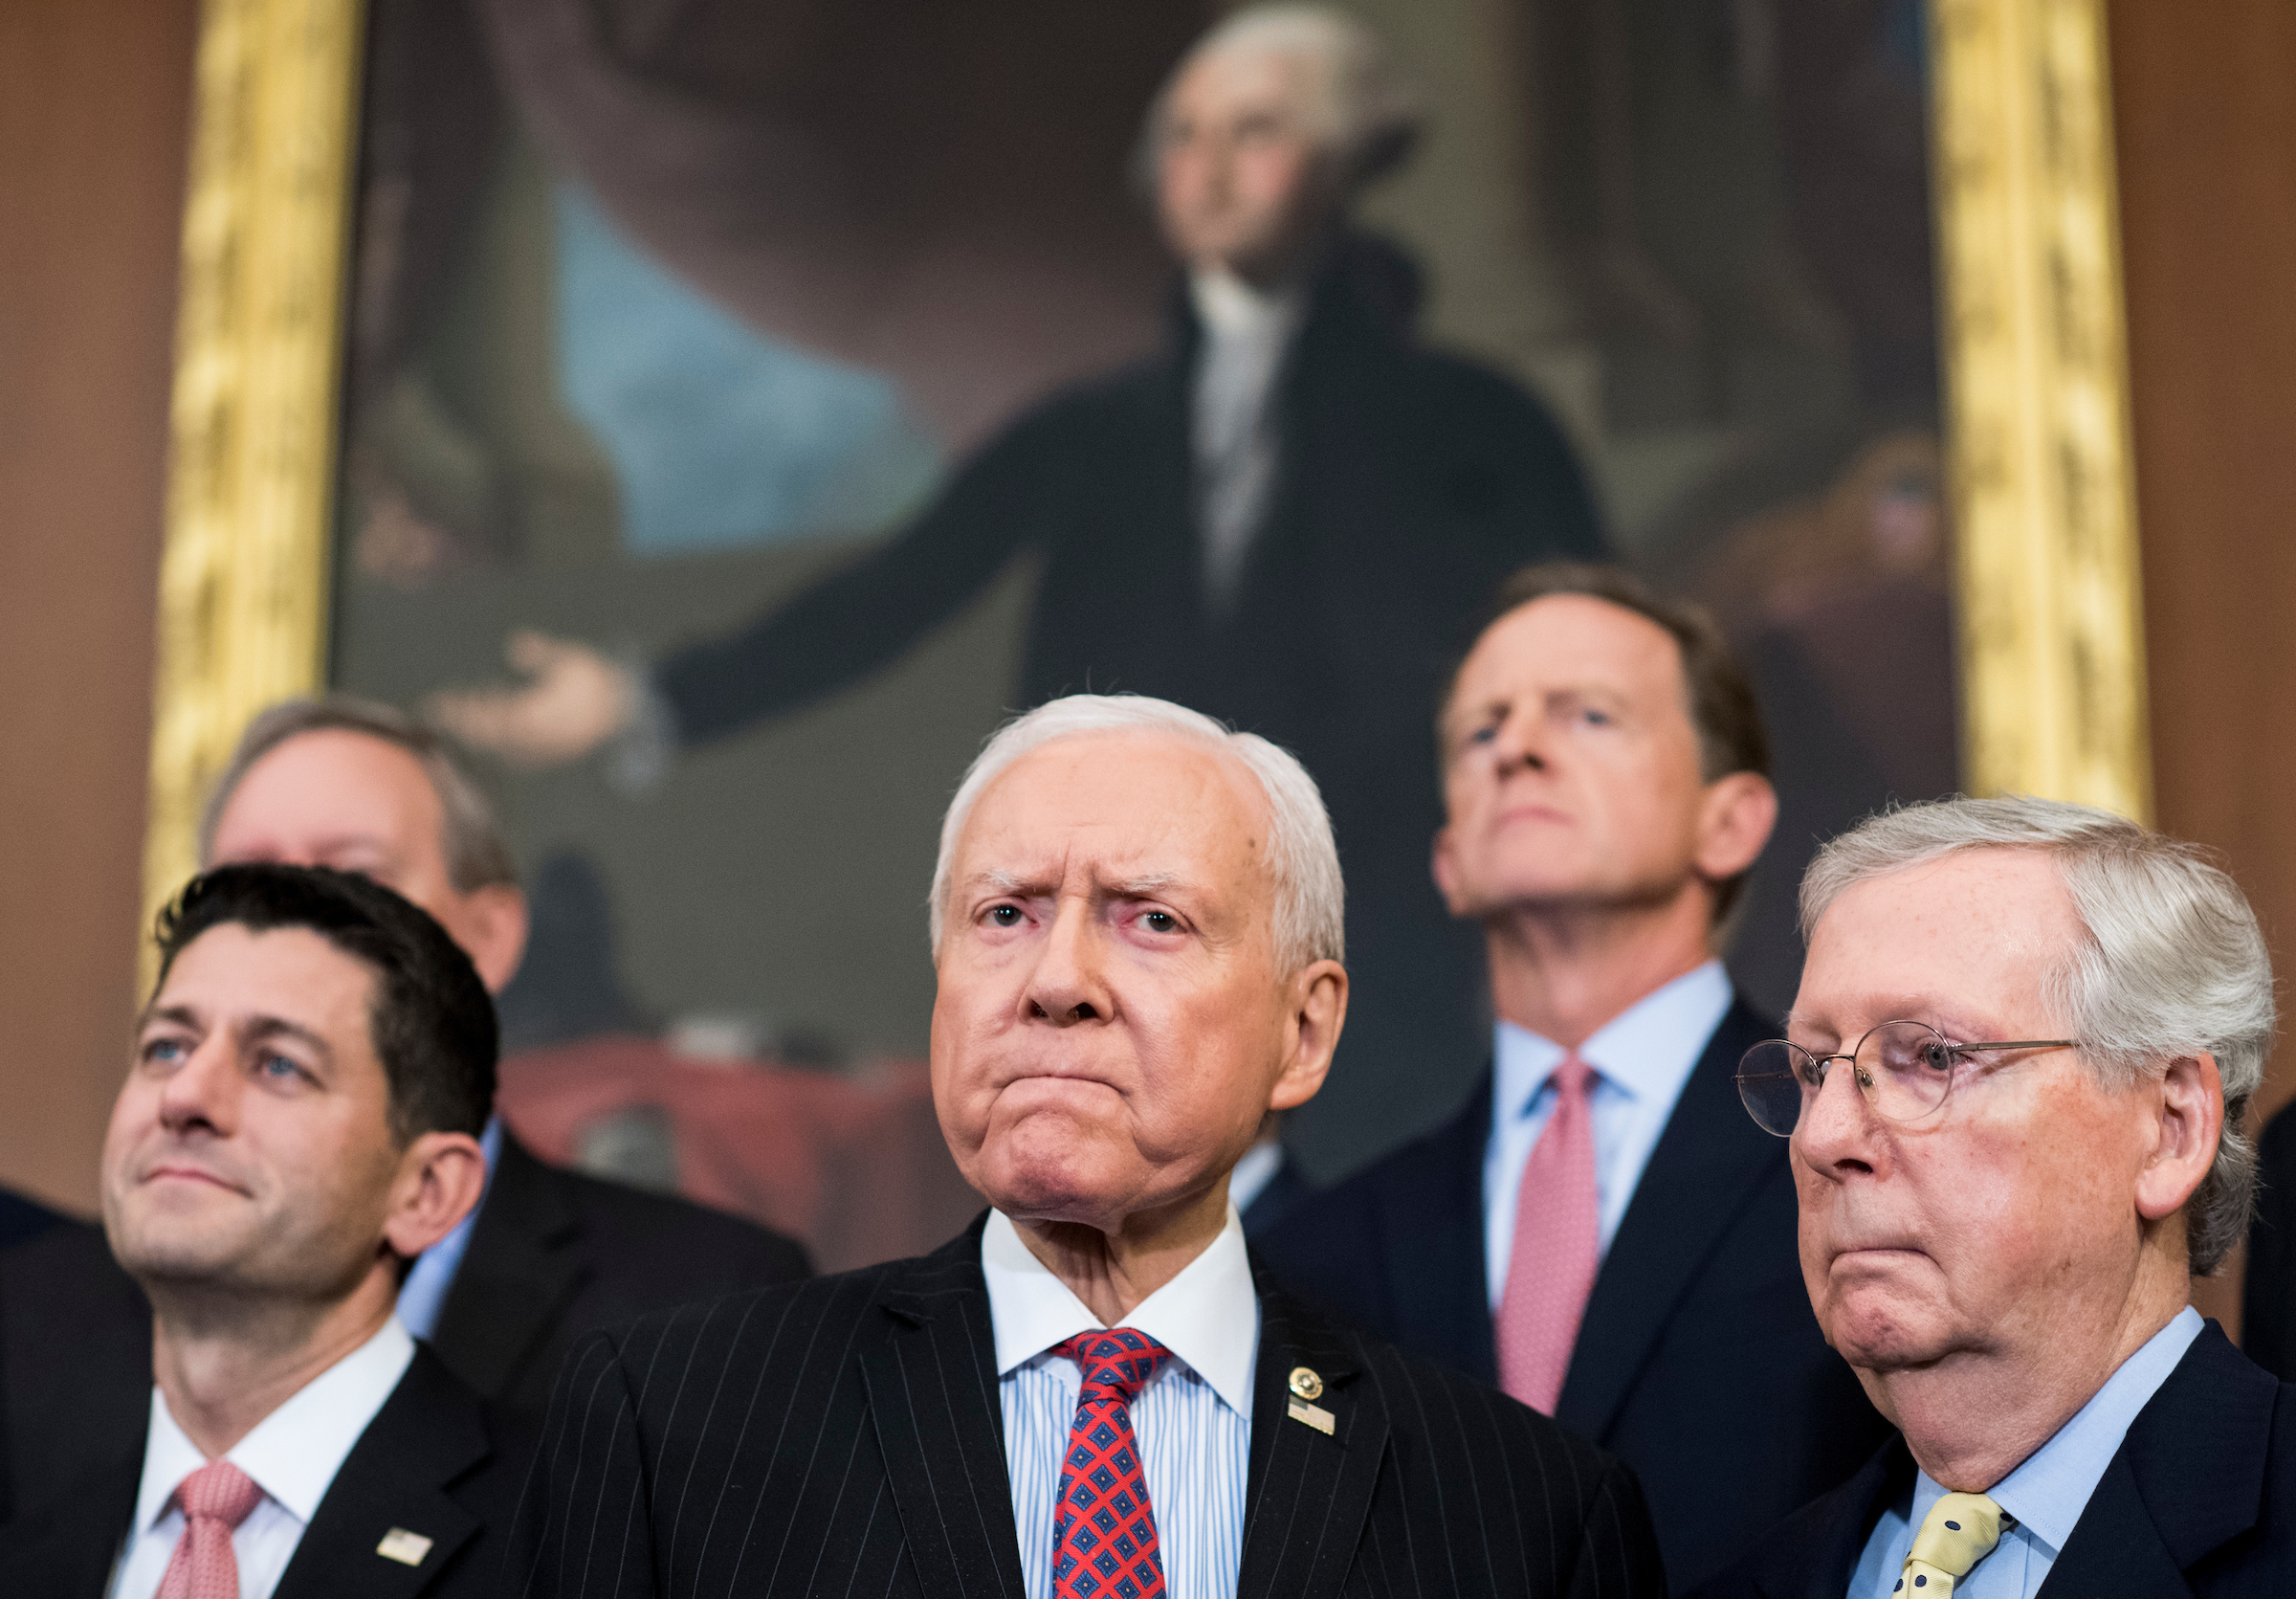 UNITED STATES - SEPTEMBER 27: From left, Speaker of the House Paul Ryan, R-Wisc., Senate Finance Committee chairman Orrin Hatch, R-Utah, and Senate Majority Leader Mitch McConnell, R-Ky., participate in the Congressional GOP media availability to unveil the GOP tax reform plan in the Capitol on Wednesday, Sept. 27, 2017. (Photo By Bill Clark/CQ Roll Call)